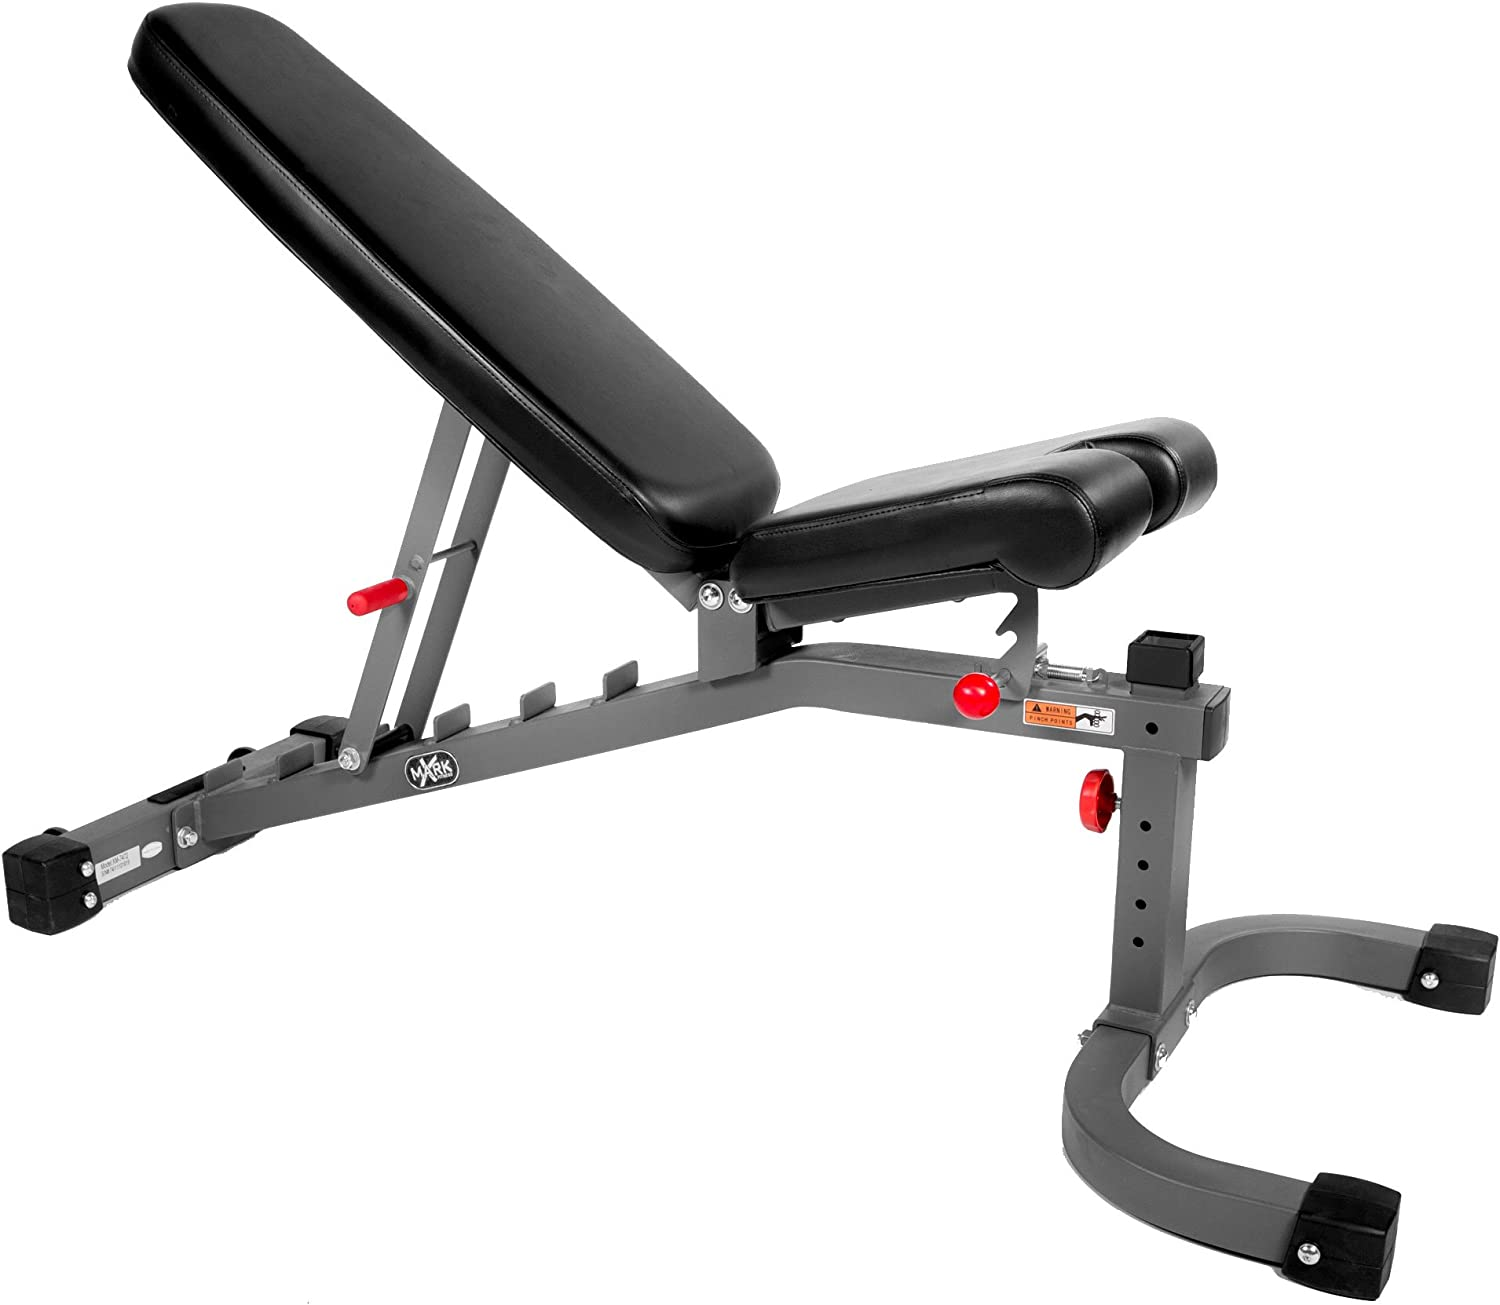 XMark Fitness Adjustable FID Weight Bench, 11-Gauge, 1500 lb. Capacity, 7 Back Pad Positions from Decline to Full Military Press Position, Ergonomic 3 Position Adjustable Seat, XM-7472 Gray or White